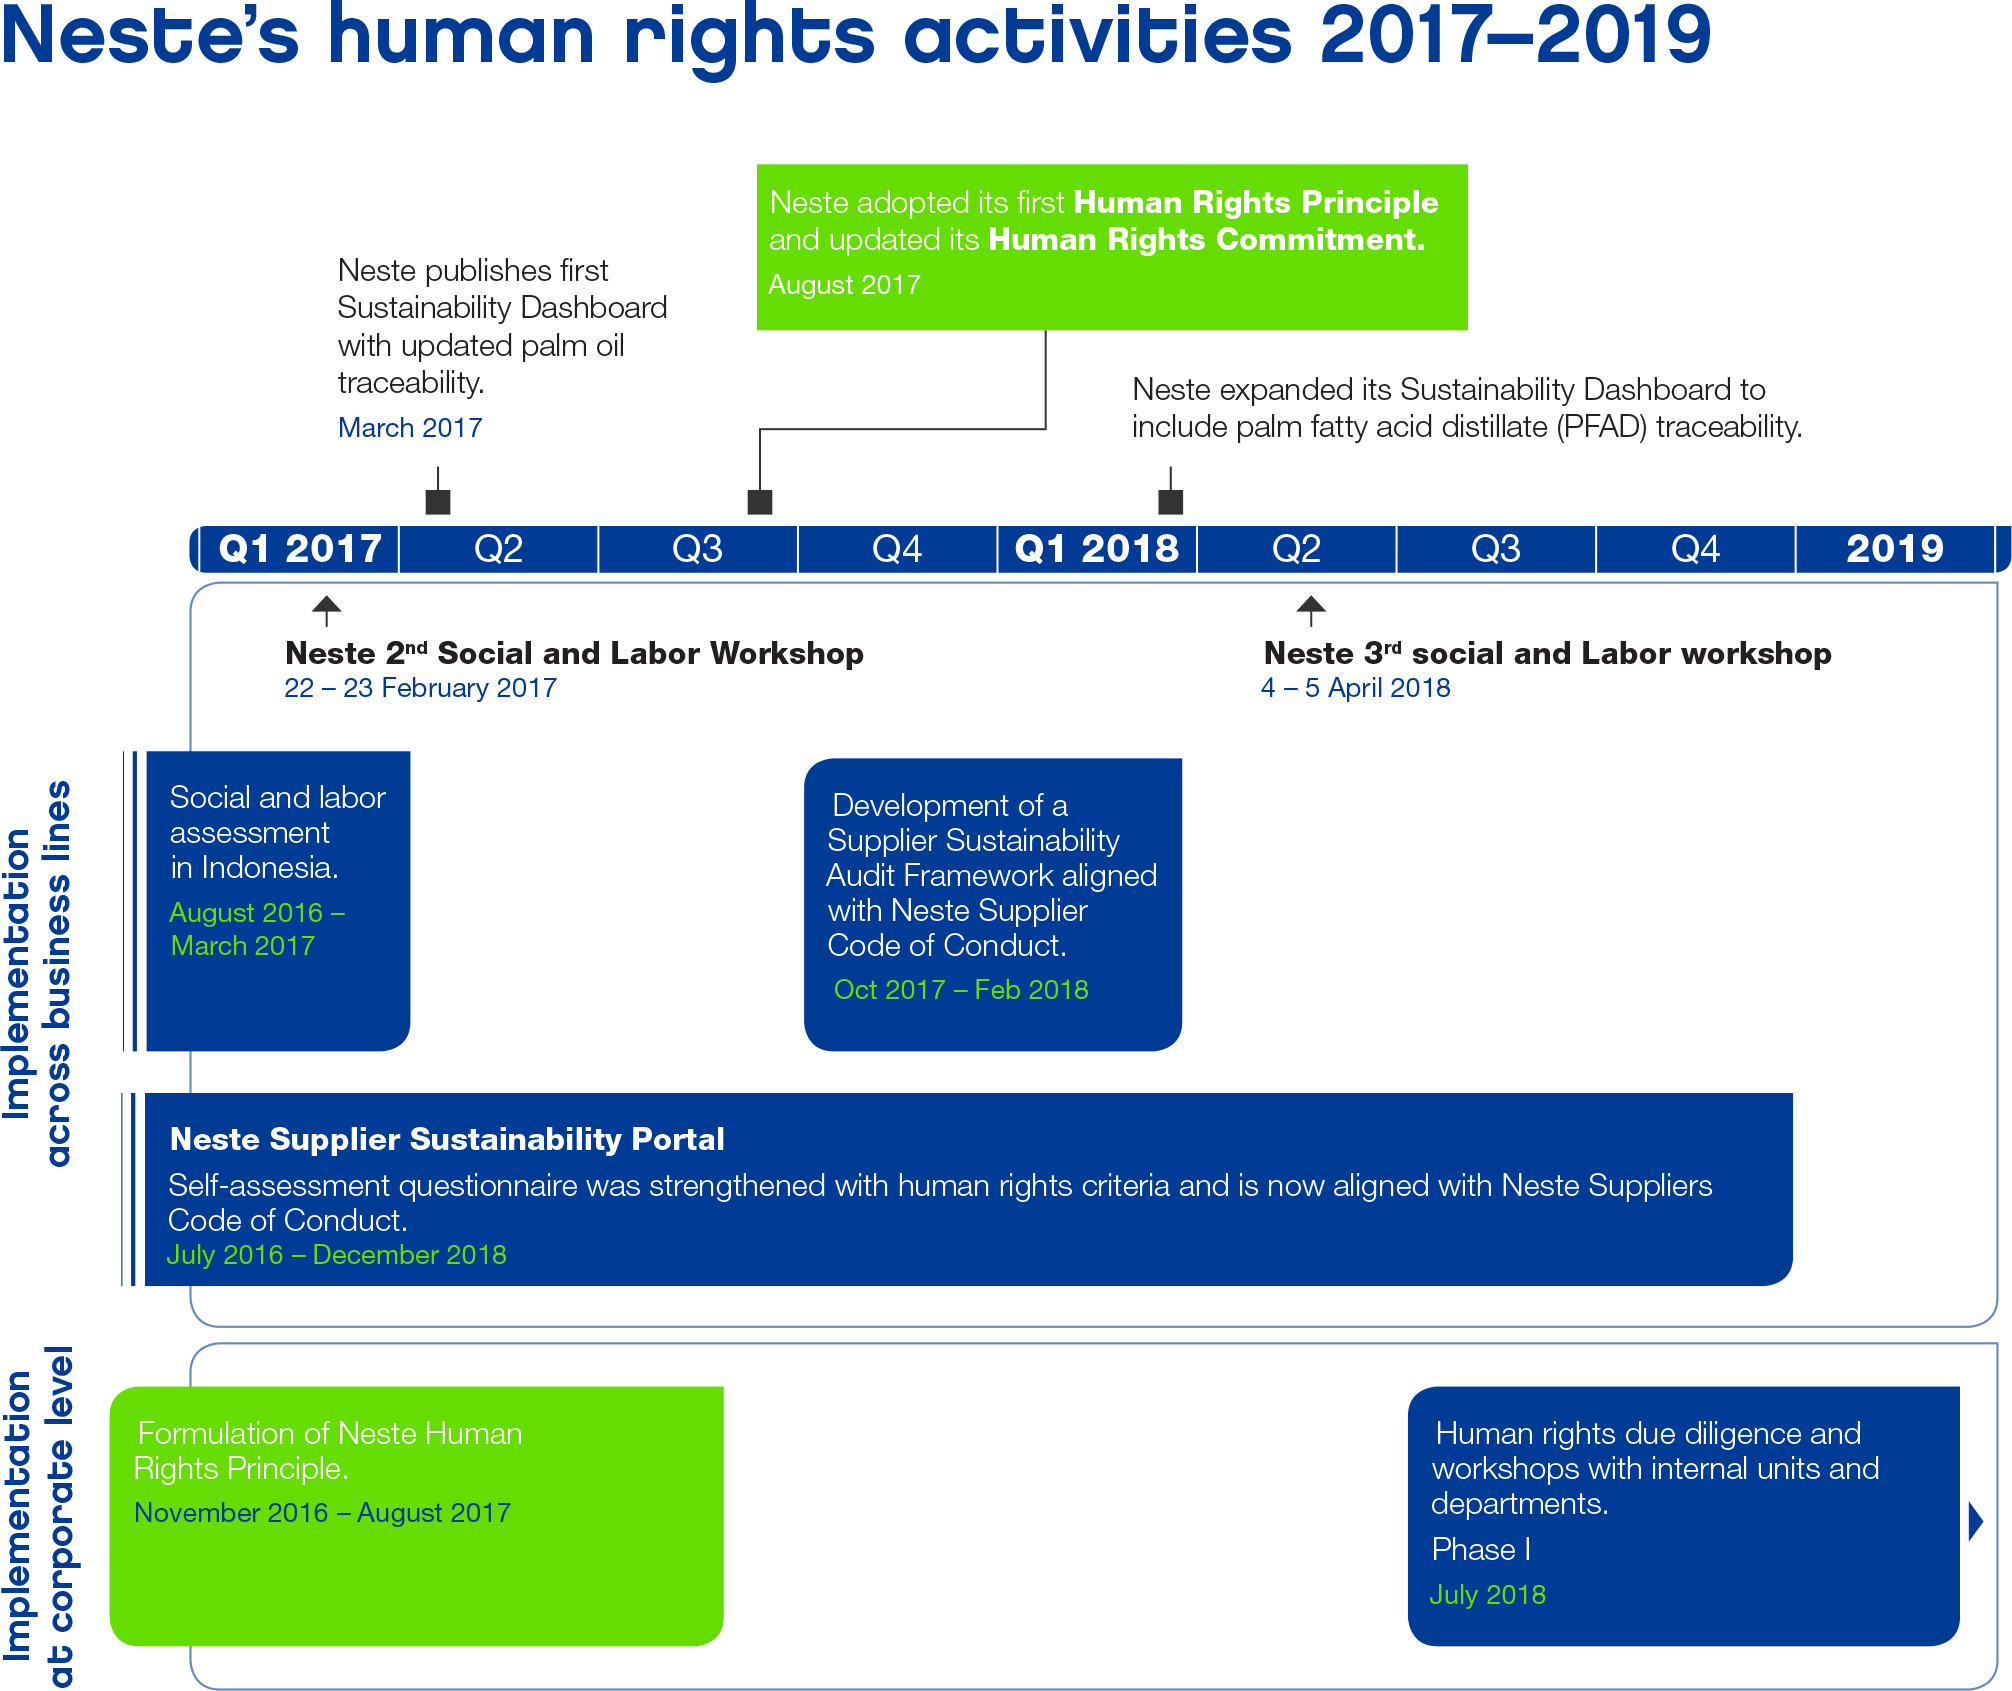 Neste human rights activities